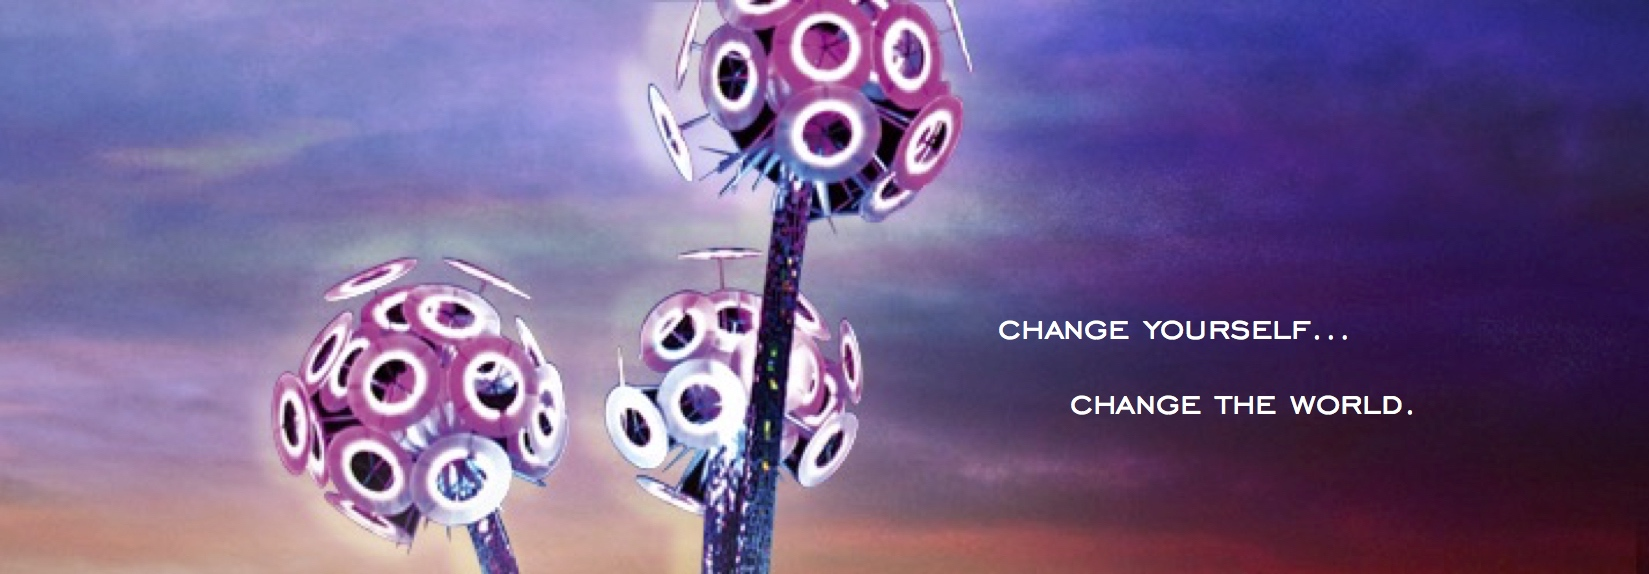 LIFE CHANGES Facebook Community Page Has New Life Changing Art Cover Photo